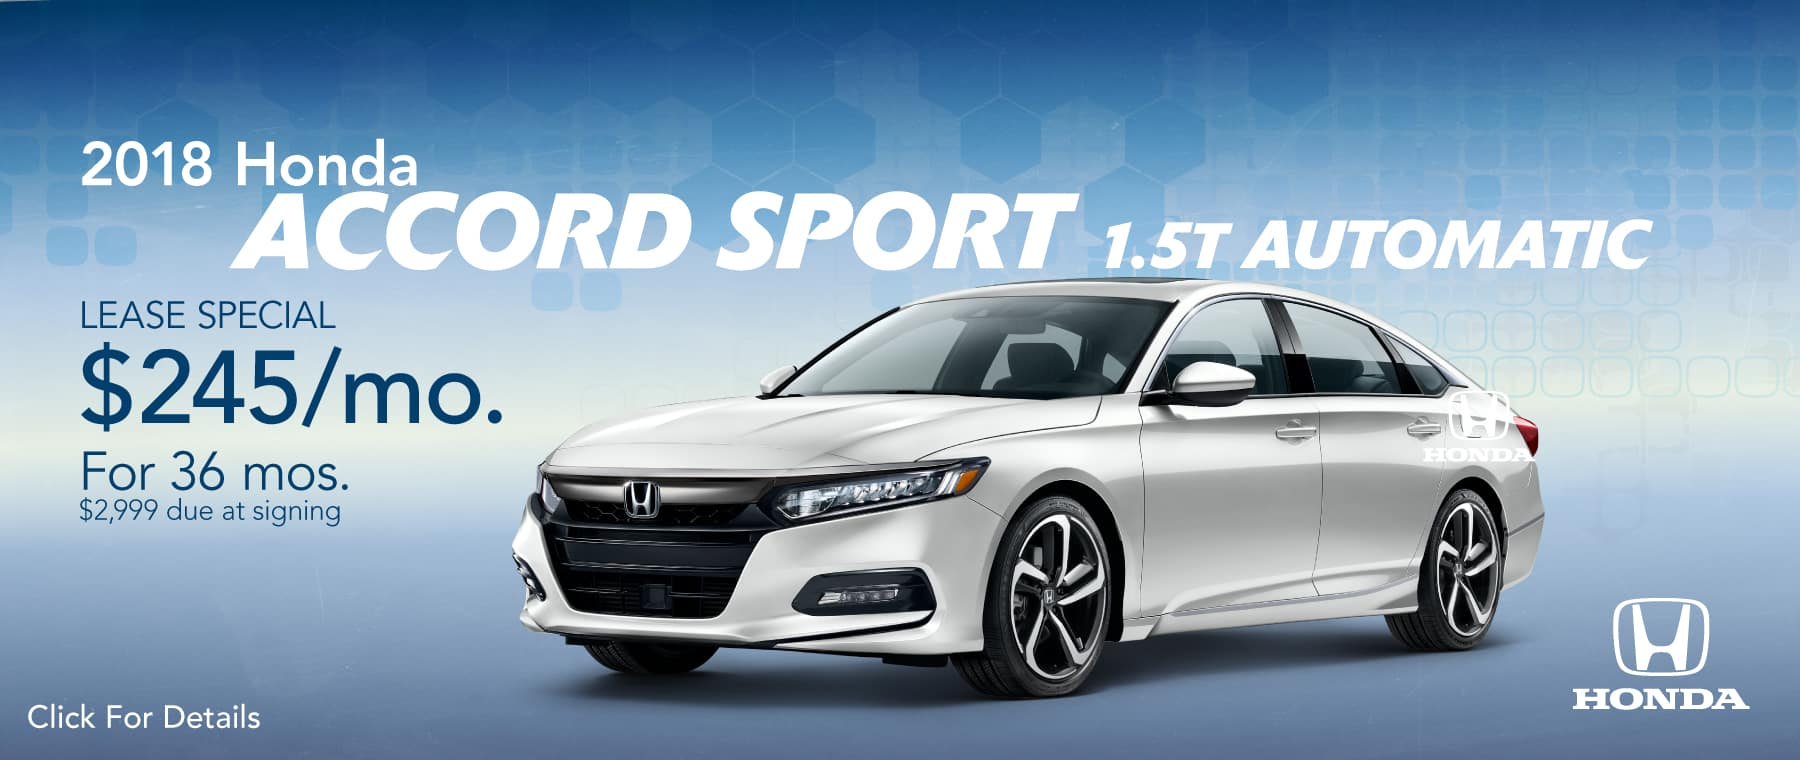 2018 Honda Accord Sport 1.5T Automatic  $245/mo. For 36 mos. $2,999 due at signing*